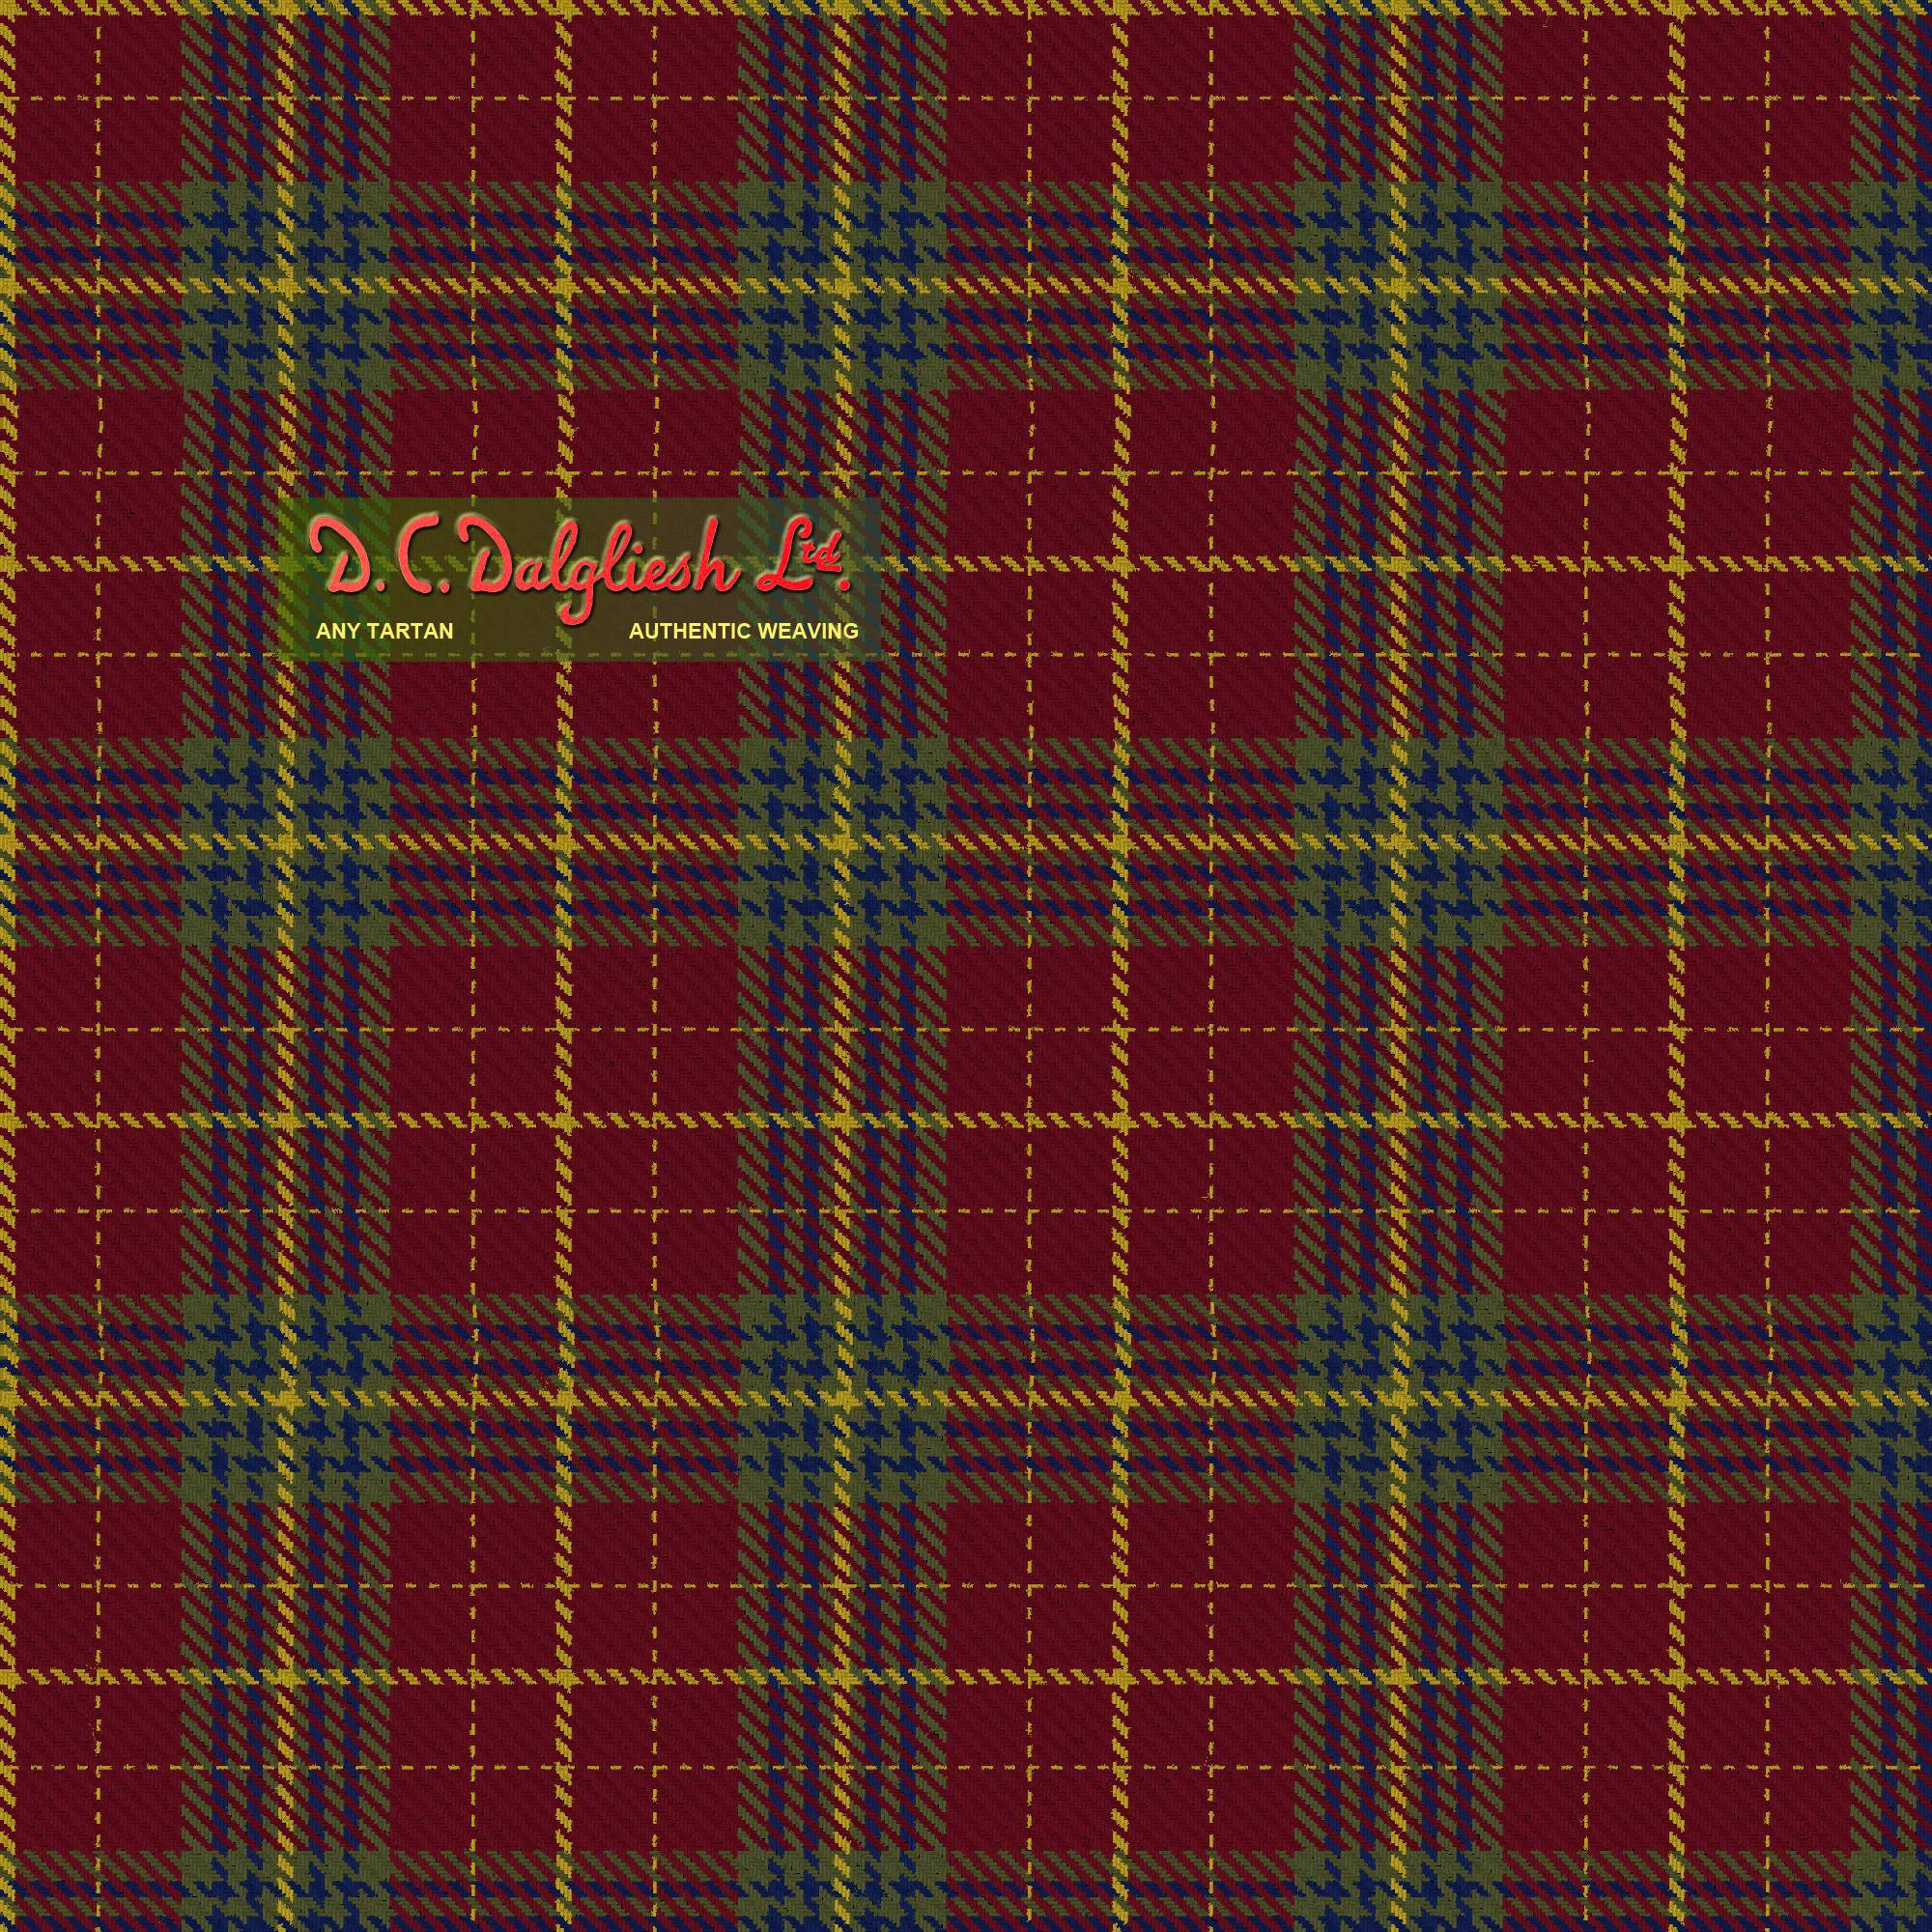 Price fabric by DC Dalgliesh - Hand Crafted Tartans